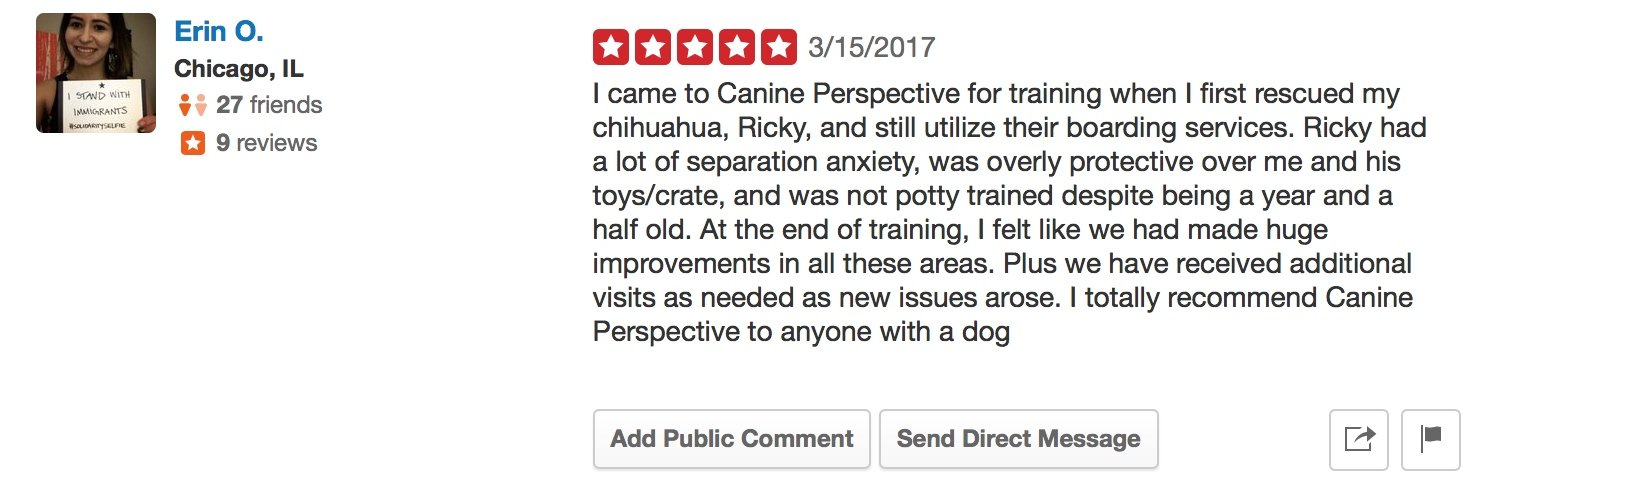 """Canine Perspective Yelp review """"I came to Canine Perspective for training when I first rescued my chihuahua, Ricky, and still utilize their boarding services. Ricky had a lot of separation anxiety, was overly protective over me and his toys/crate, and was not potty trained despite being a year and a half old. At the end of training, I felt like we had made huge improvements in all these areas. Plus we have received additional visits as needed as new issues arose. I totally recommend Canine Perspective to anyone with a dog"""""""